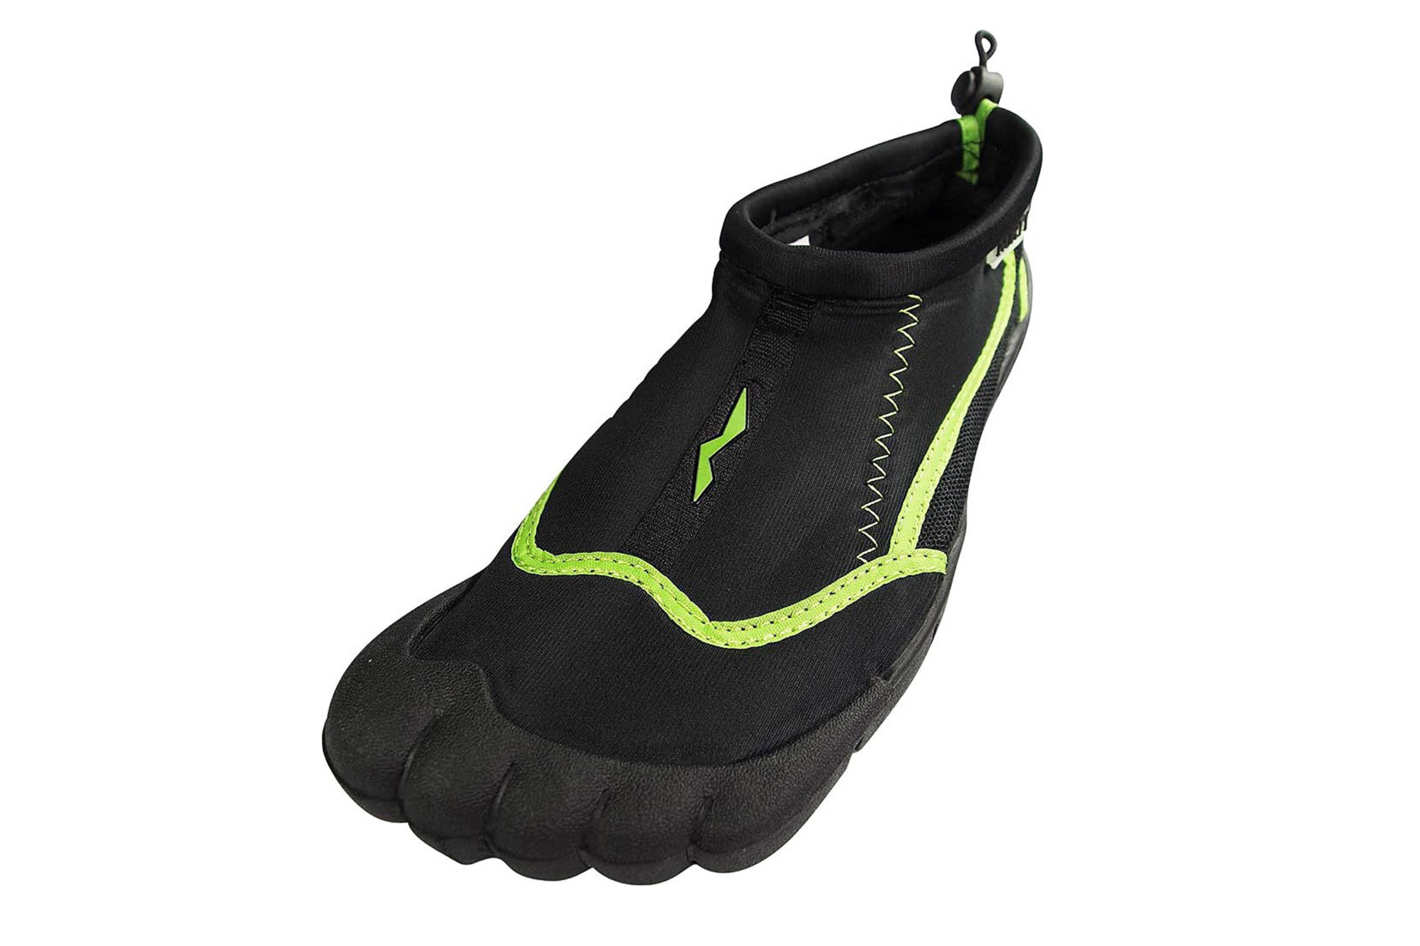 Water Shoes for Hawaii